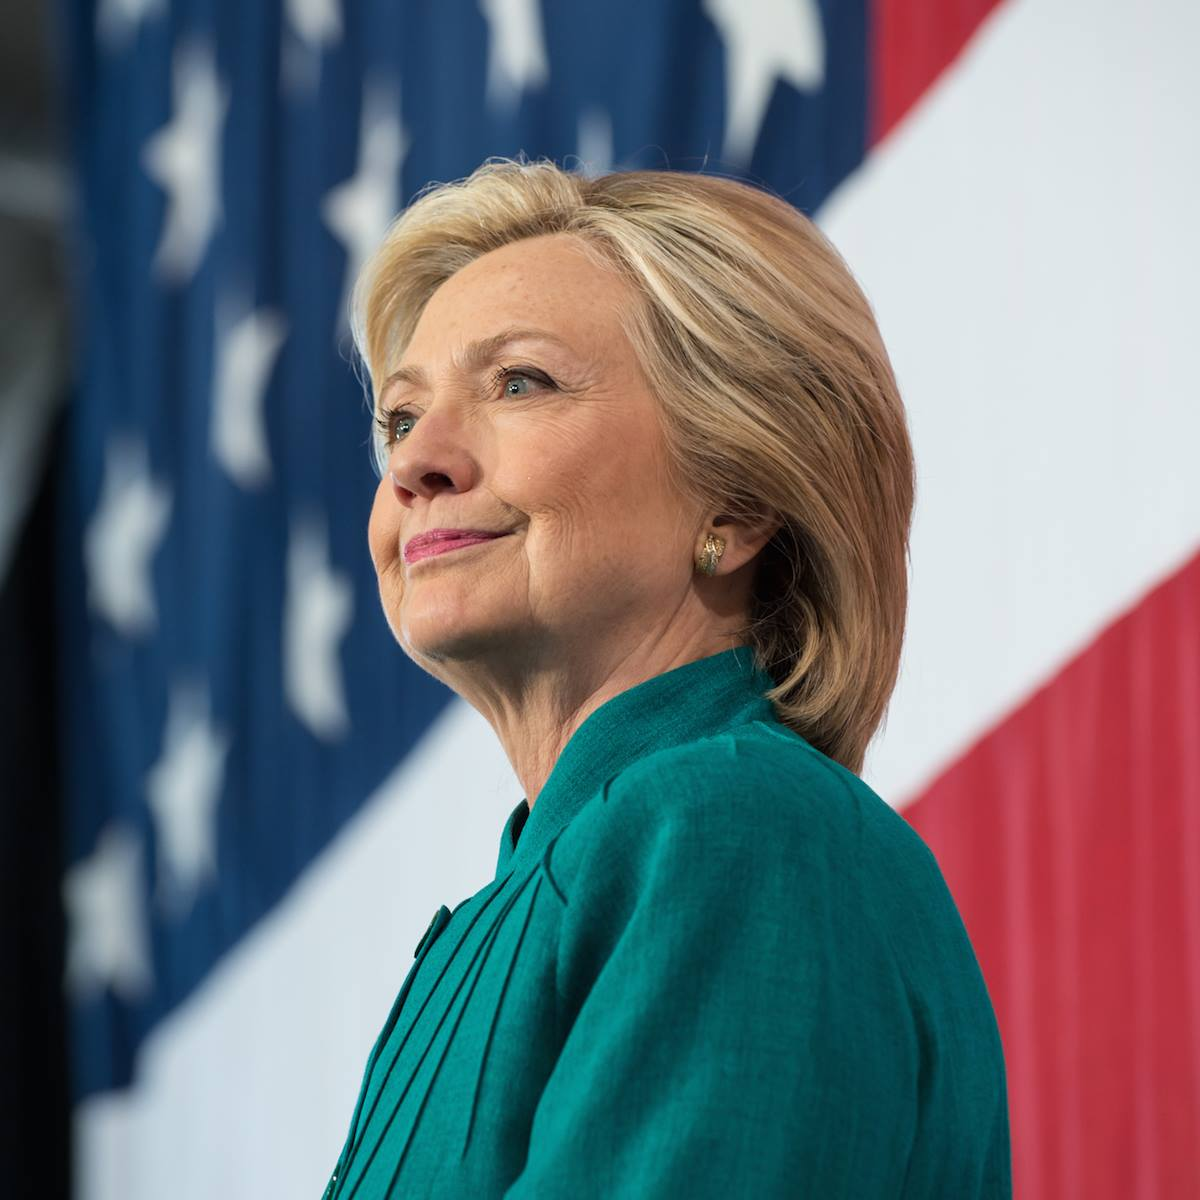 clinton proposes tuition free public higher education for families